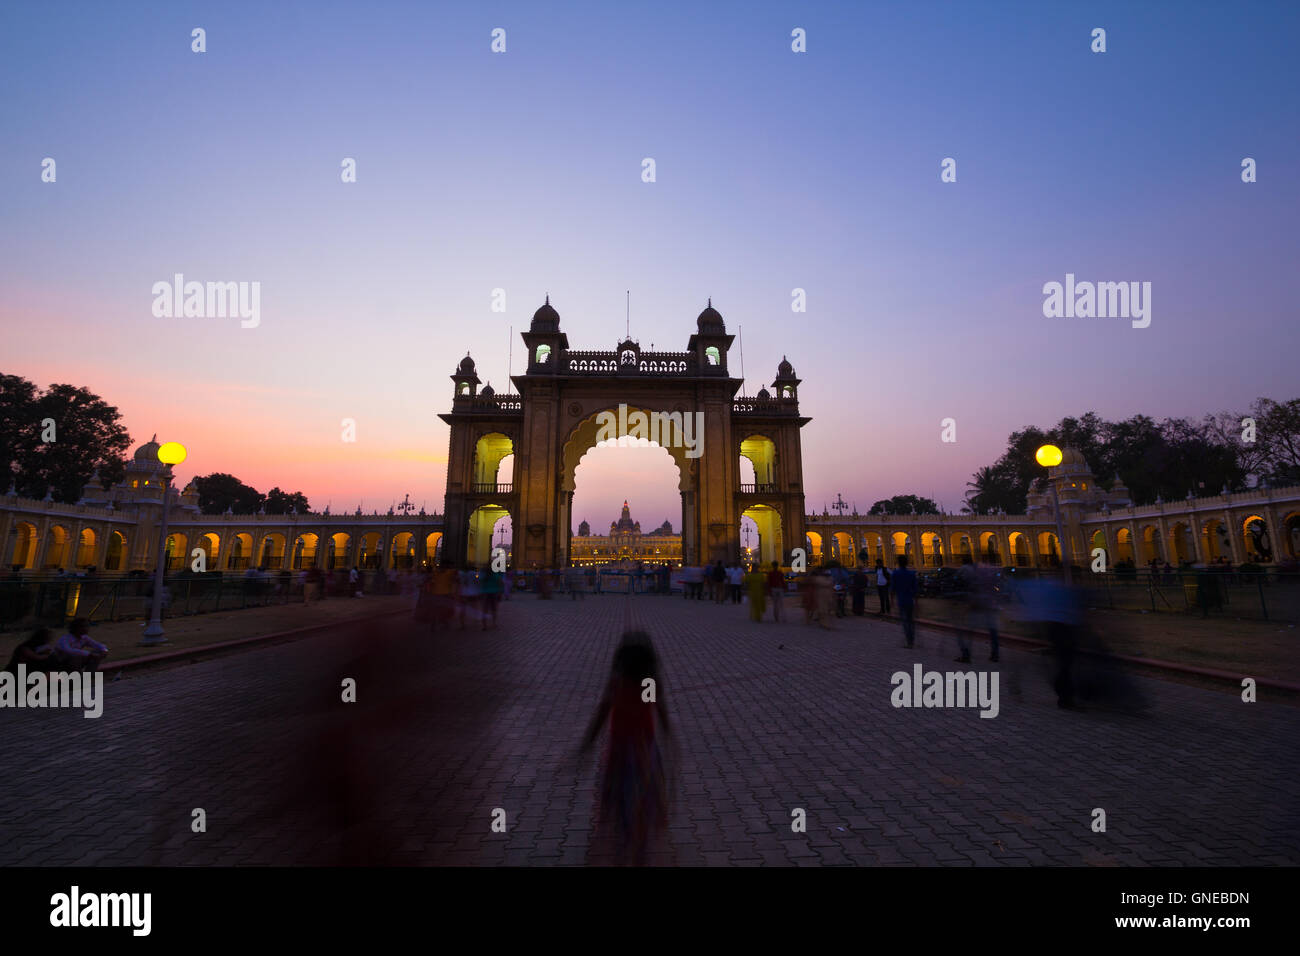 Mysore Palace, one of the most famous tourist attractions in India. Mysore is commonly described as the City of Stock Photo